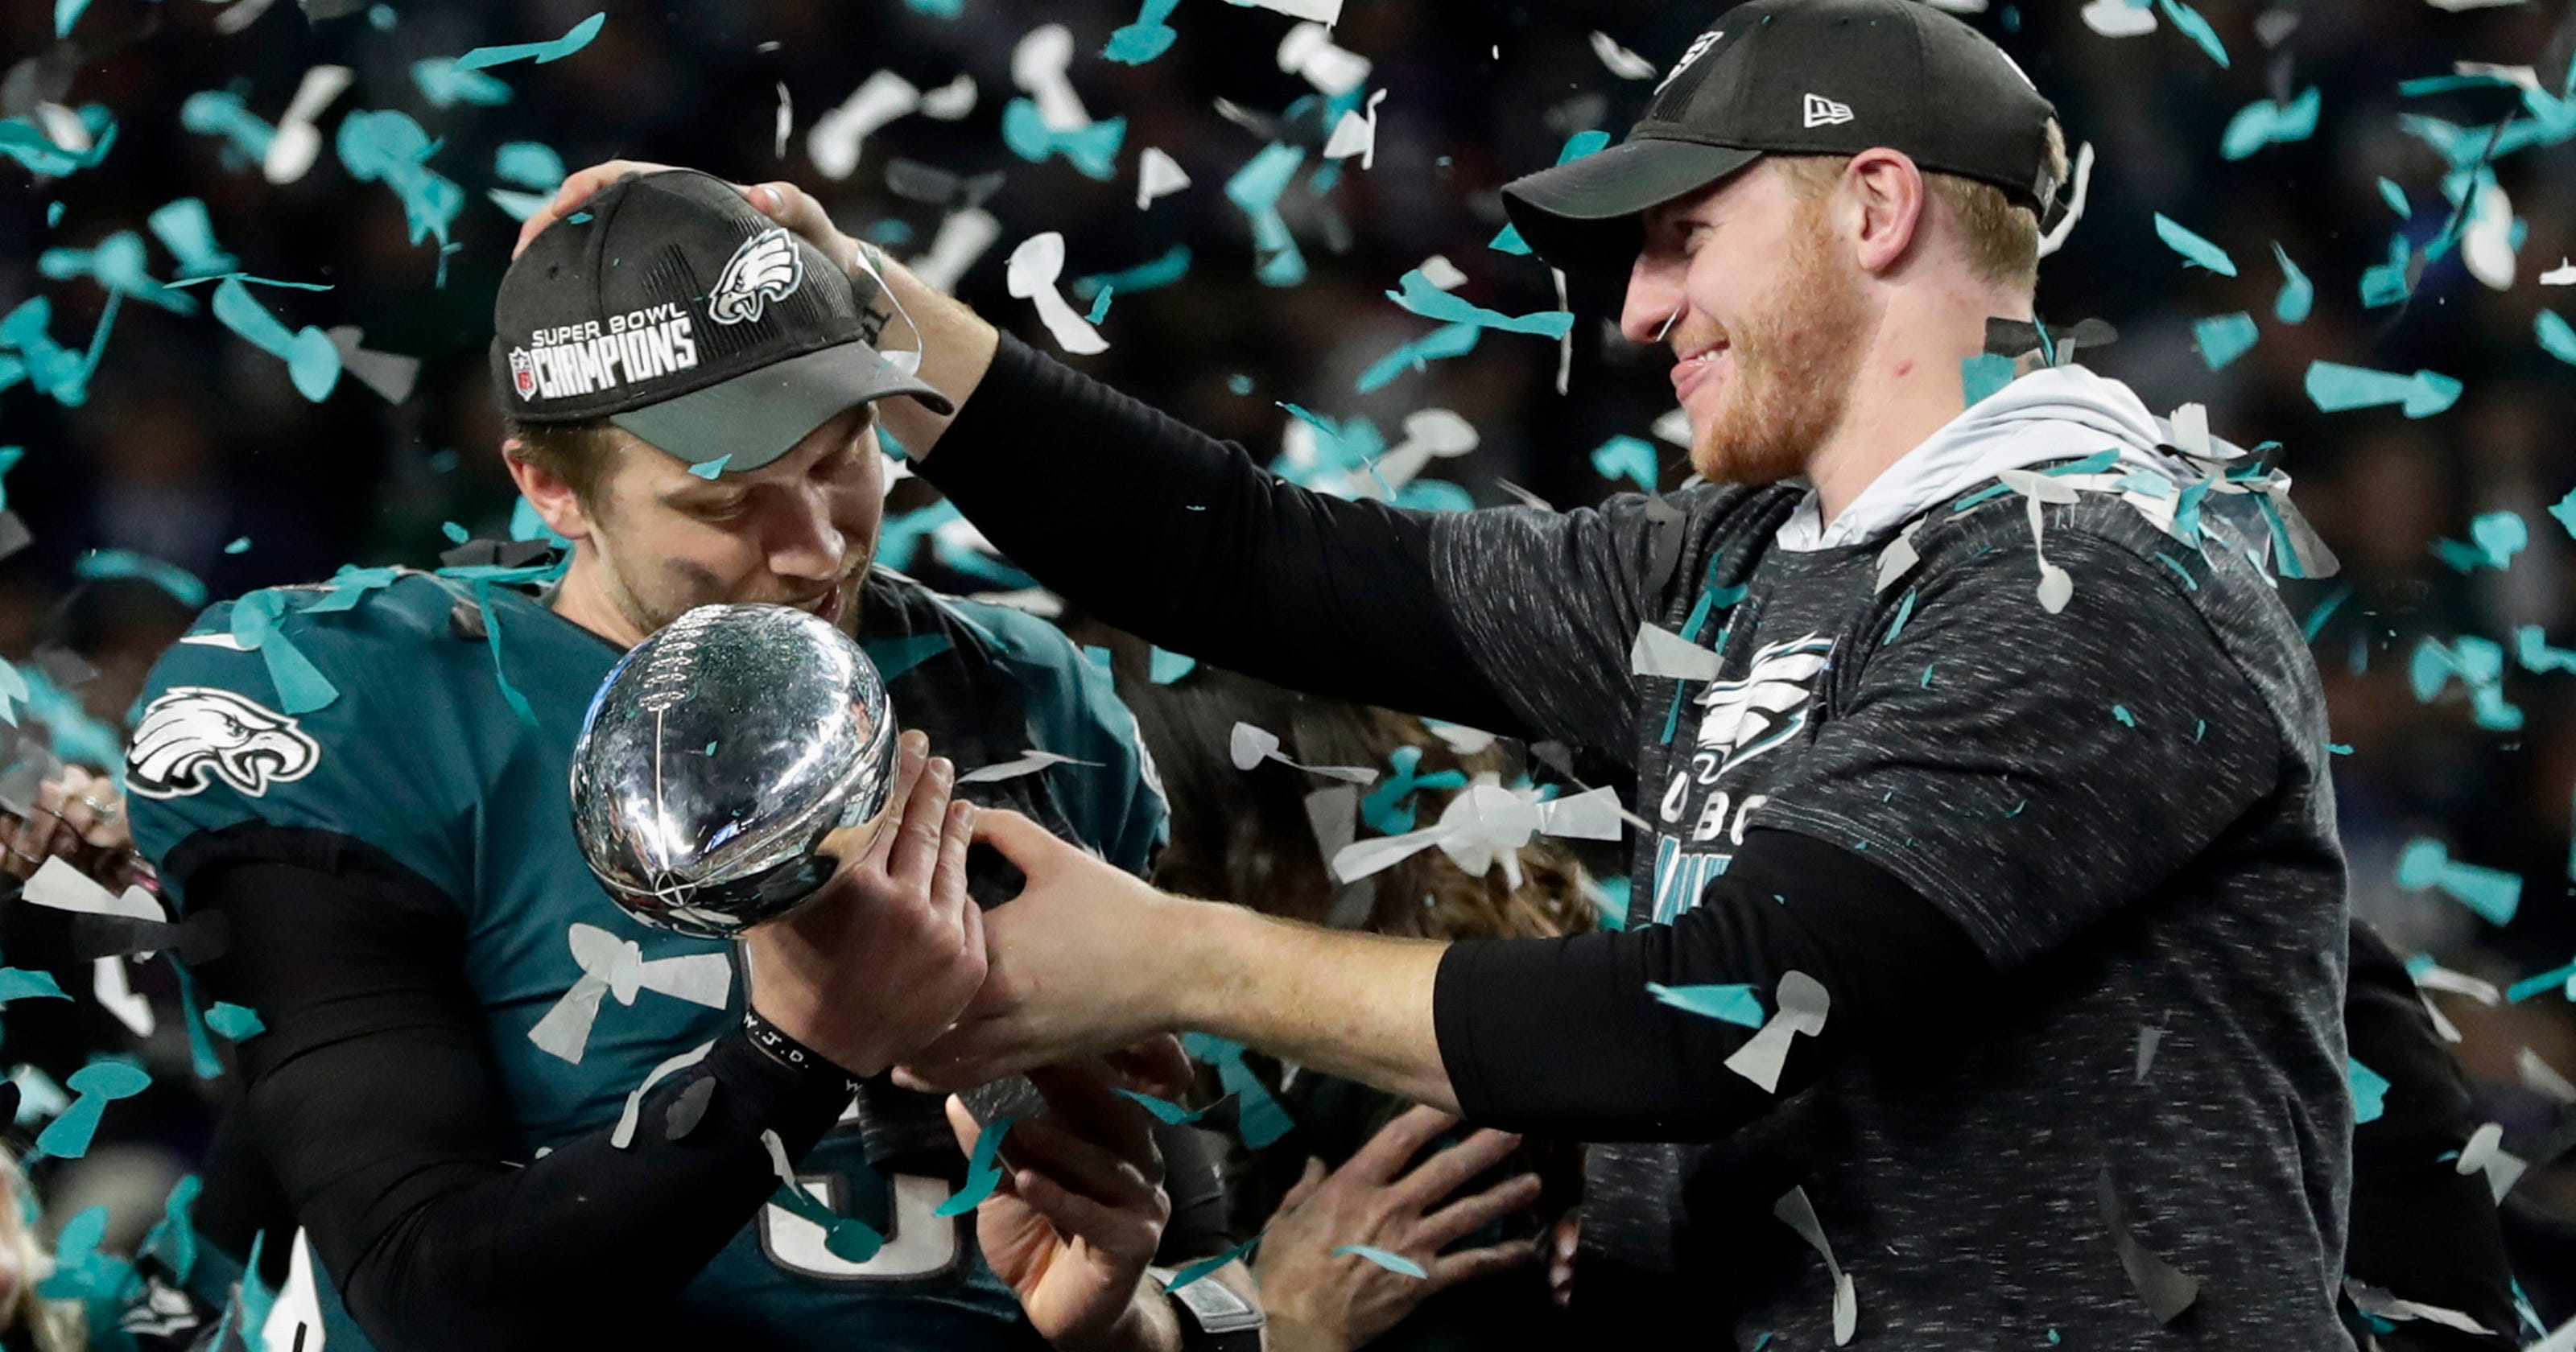 14c40f27374 Mitch Albom: Philadelphia Eagles' Super Bowl miracle started with guts